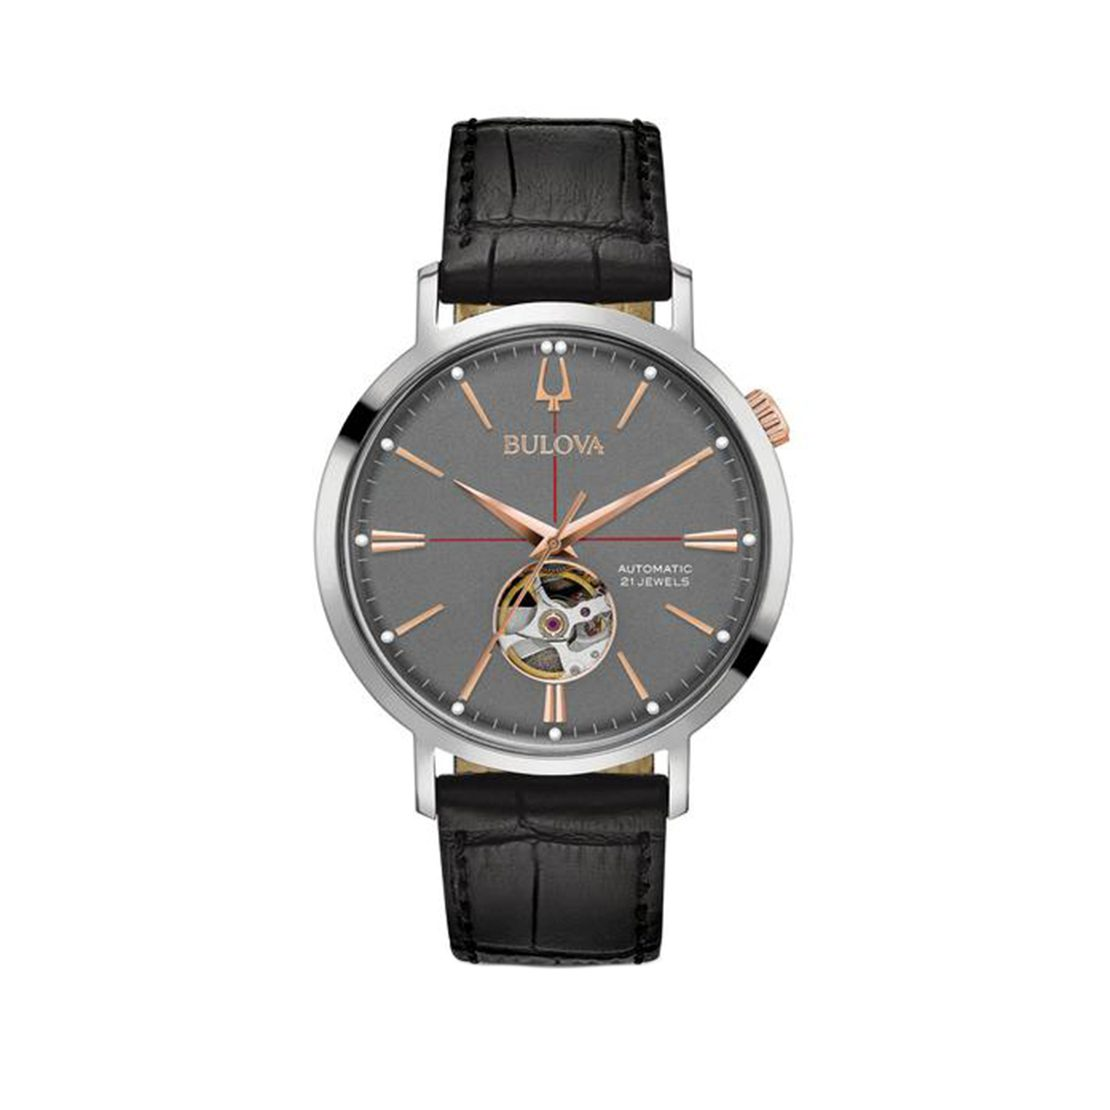 Men's Bulova grey and rose gold-tone automatic self-winding watch on black leather strap